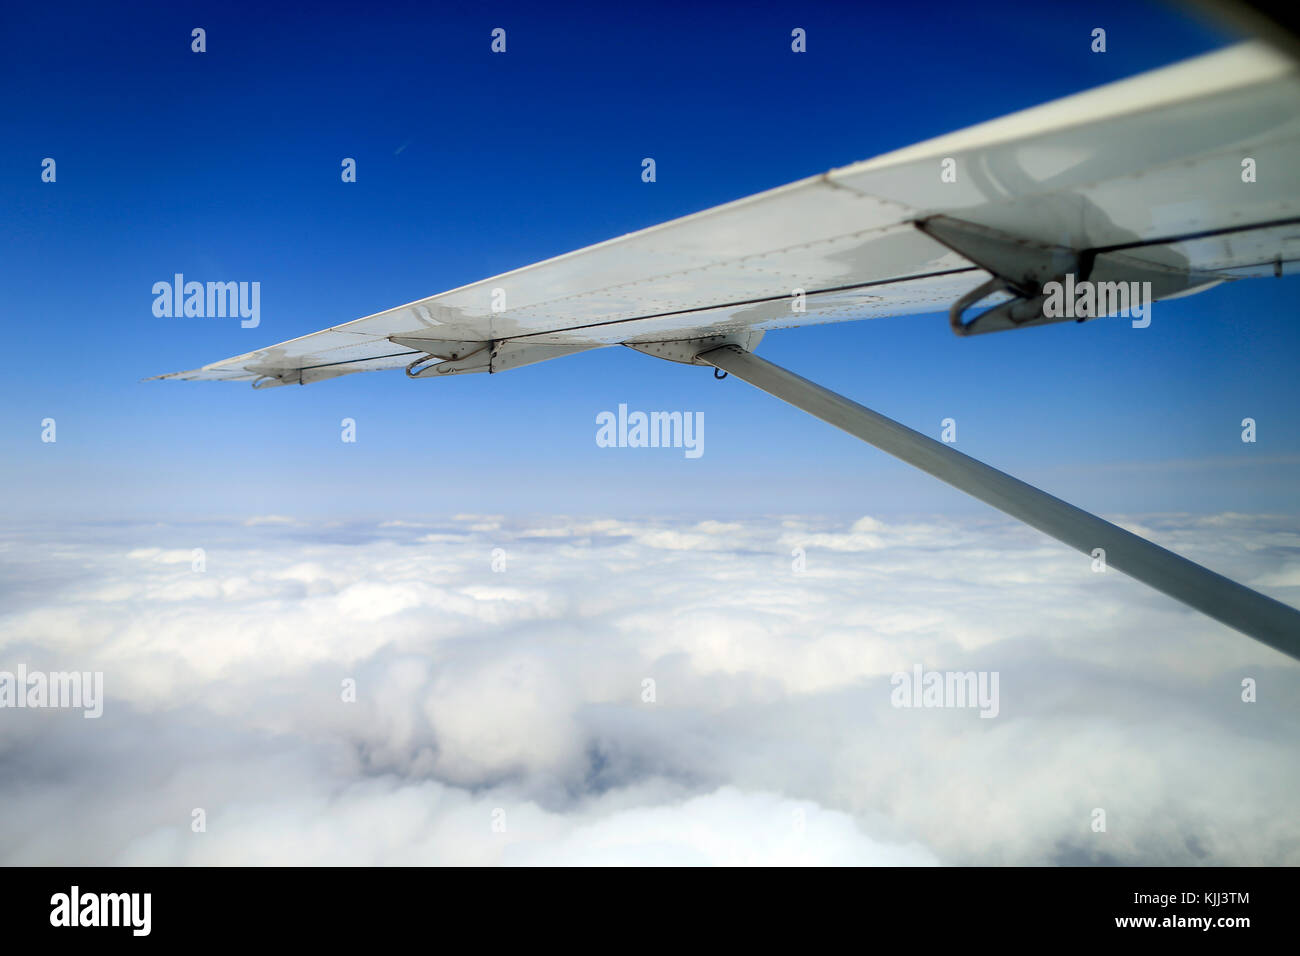 Clouds and blue sky from airplane window.  Masai Mara game reserve. Kenya. - Stock Image